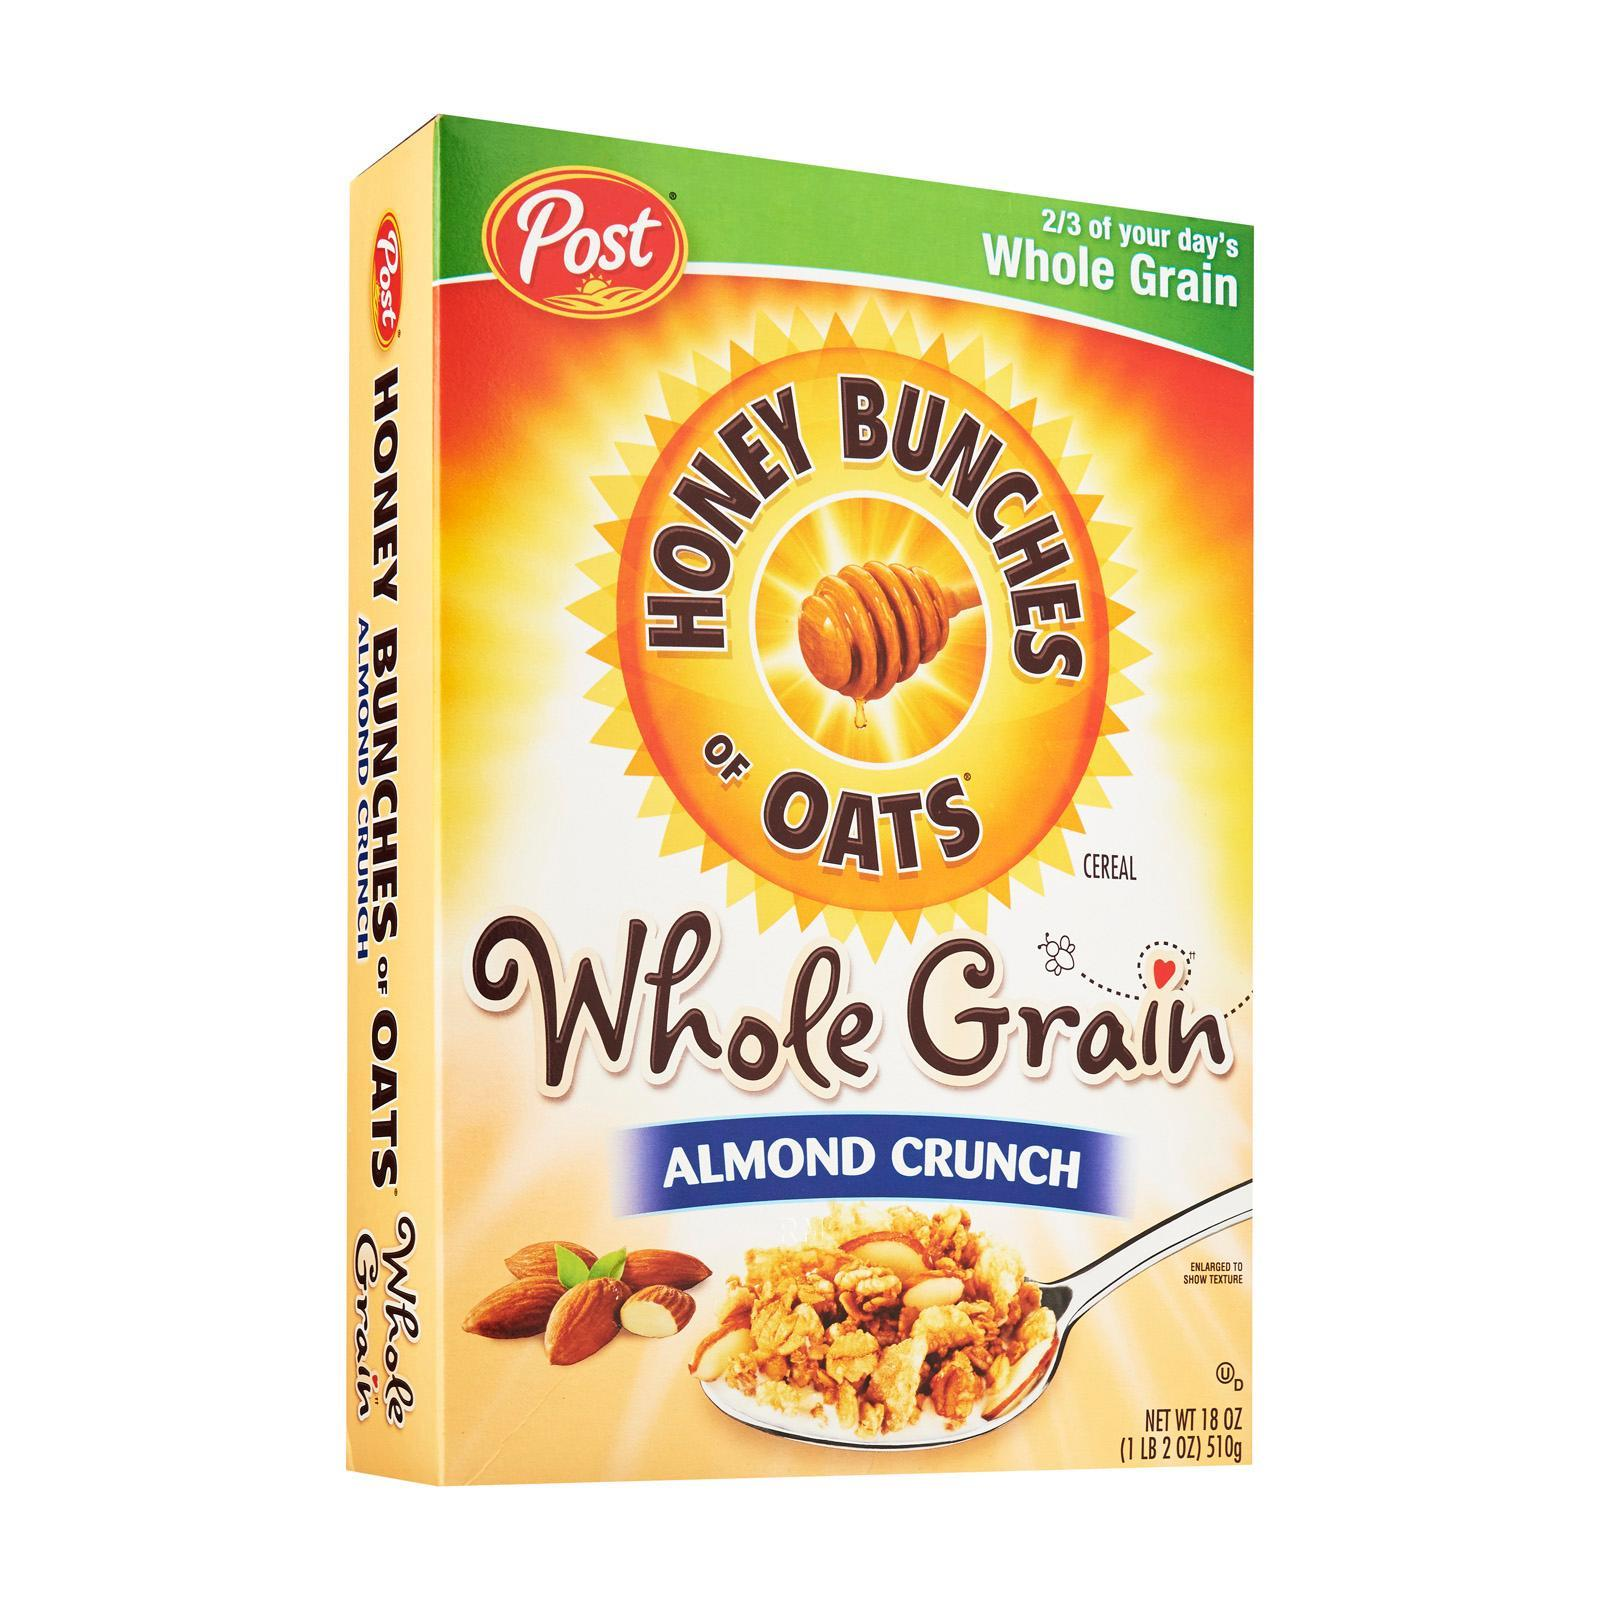 POST Honey Bunches of Oats - Whole Grain Almond Crunch 510g